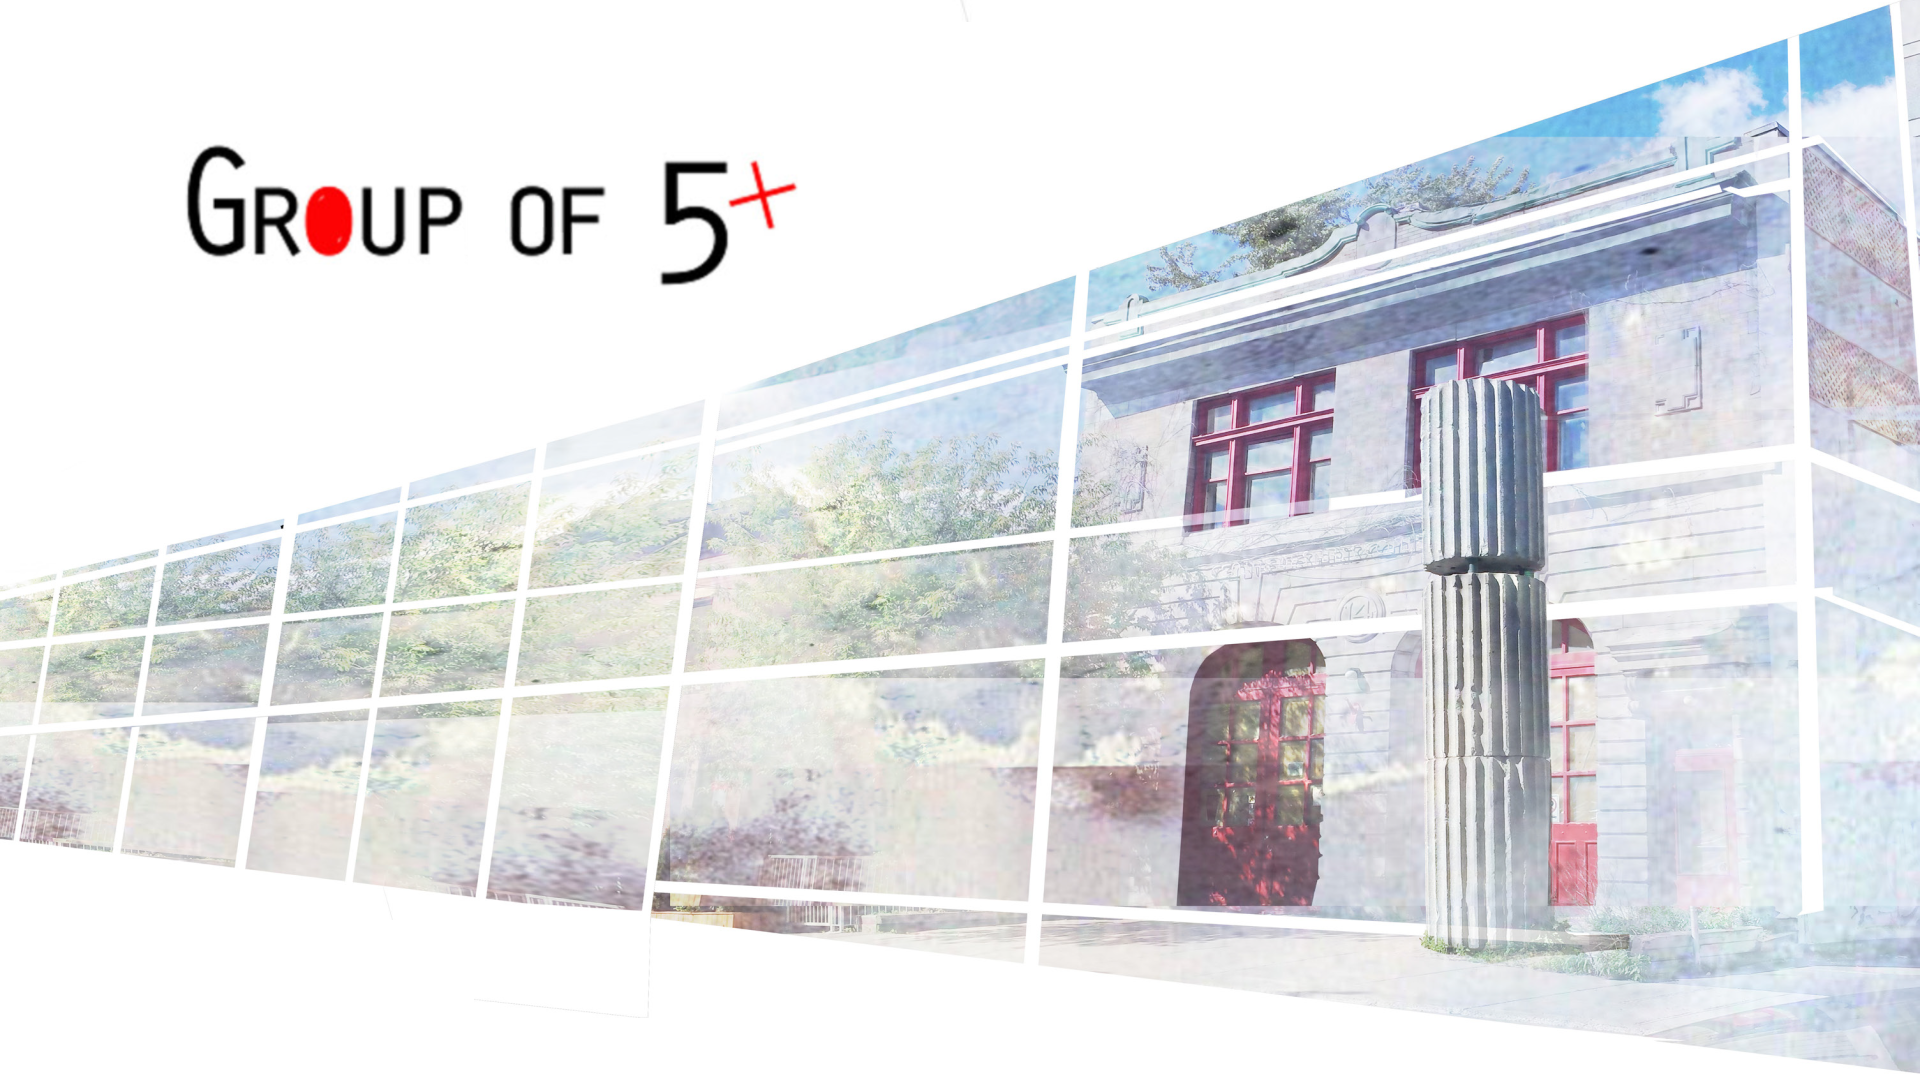 Header image for the Group of 5 webpage. Name of the group and image of the Firestation 14, expected home of the group.